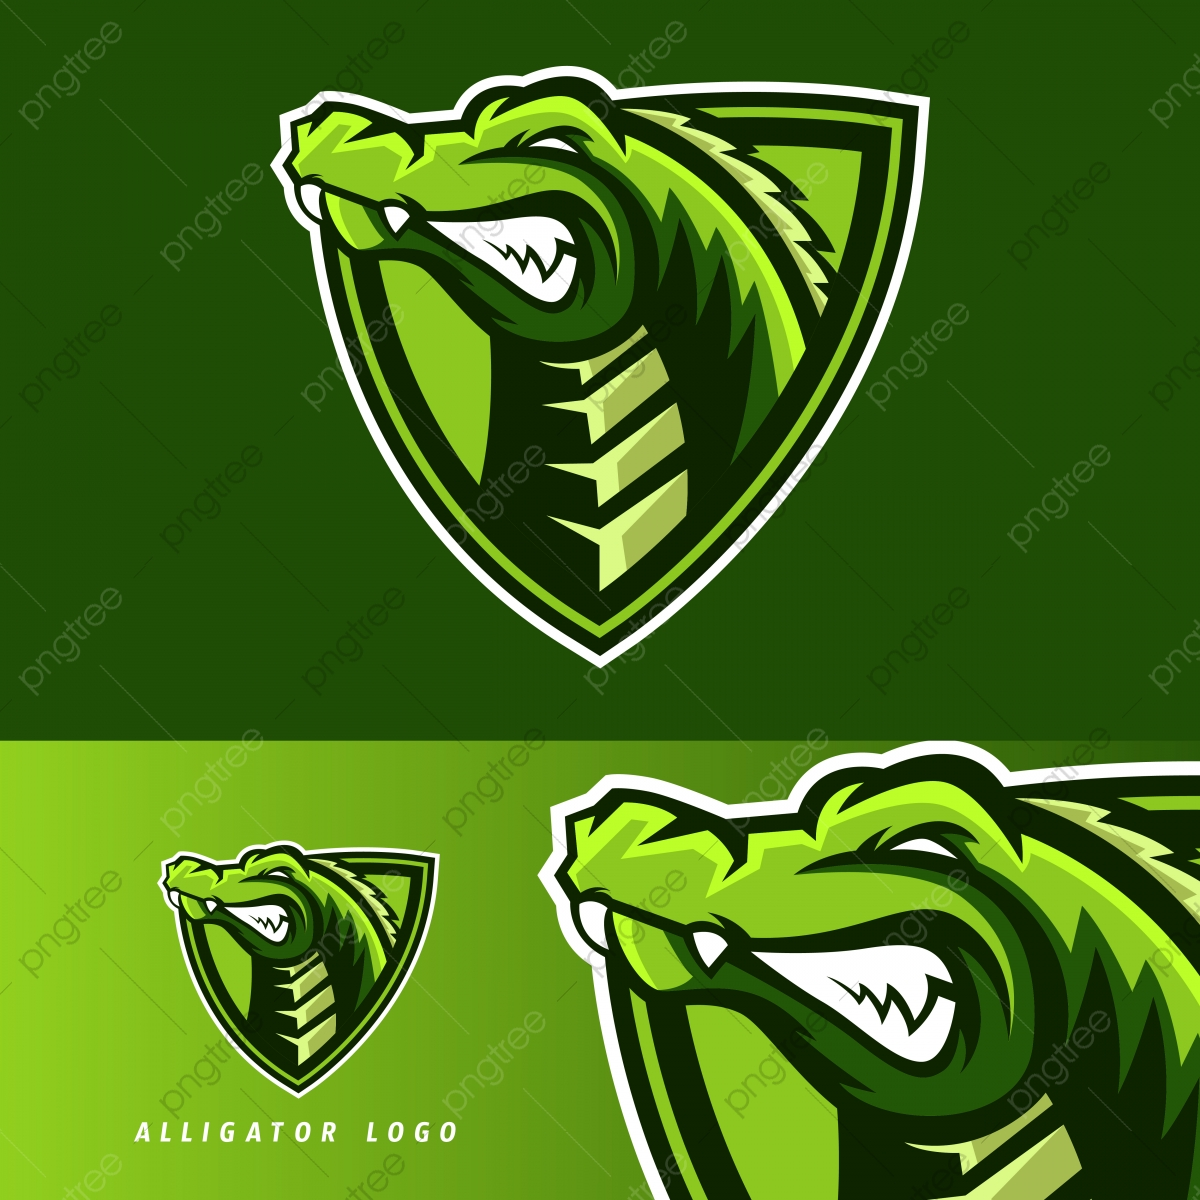 Alligator Esport Gaming Mascot Logo Template Template Download On Pngtree